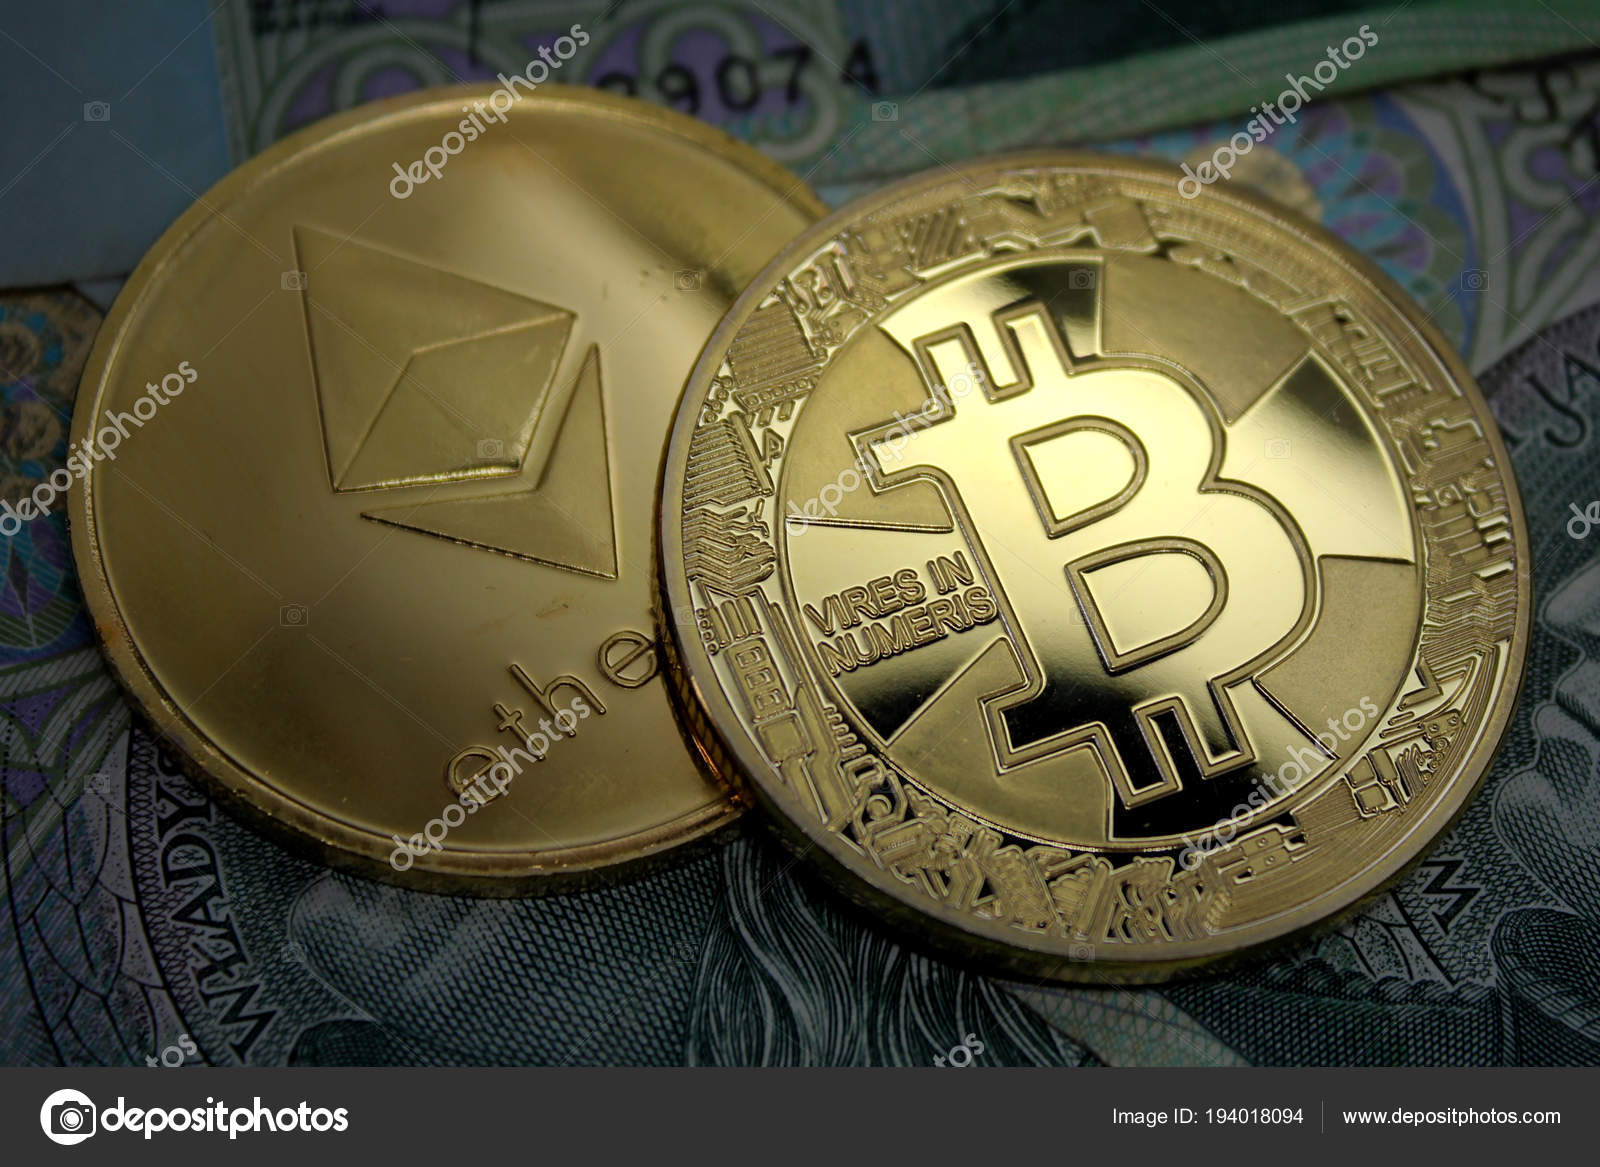 Ethereum Bitcoin Coin Cryptocurrency Coins Polish Money